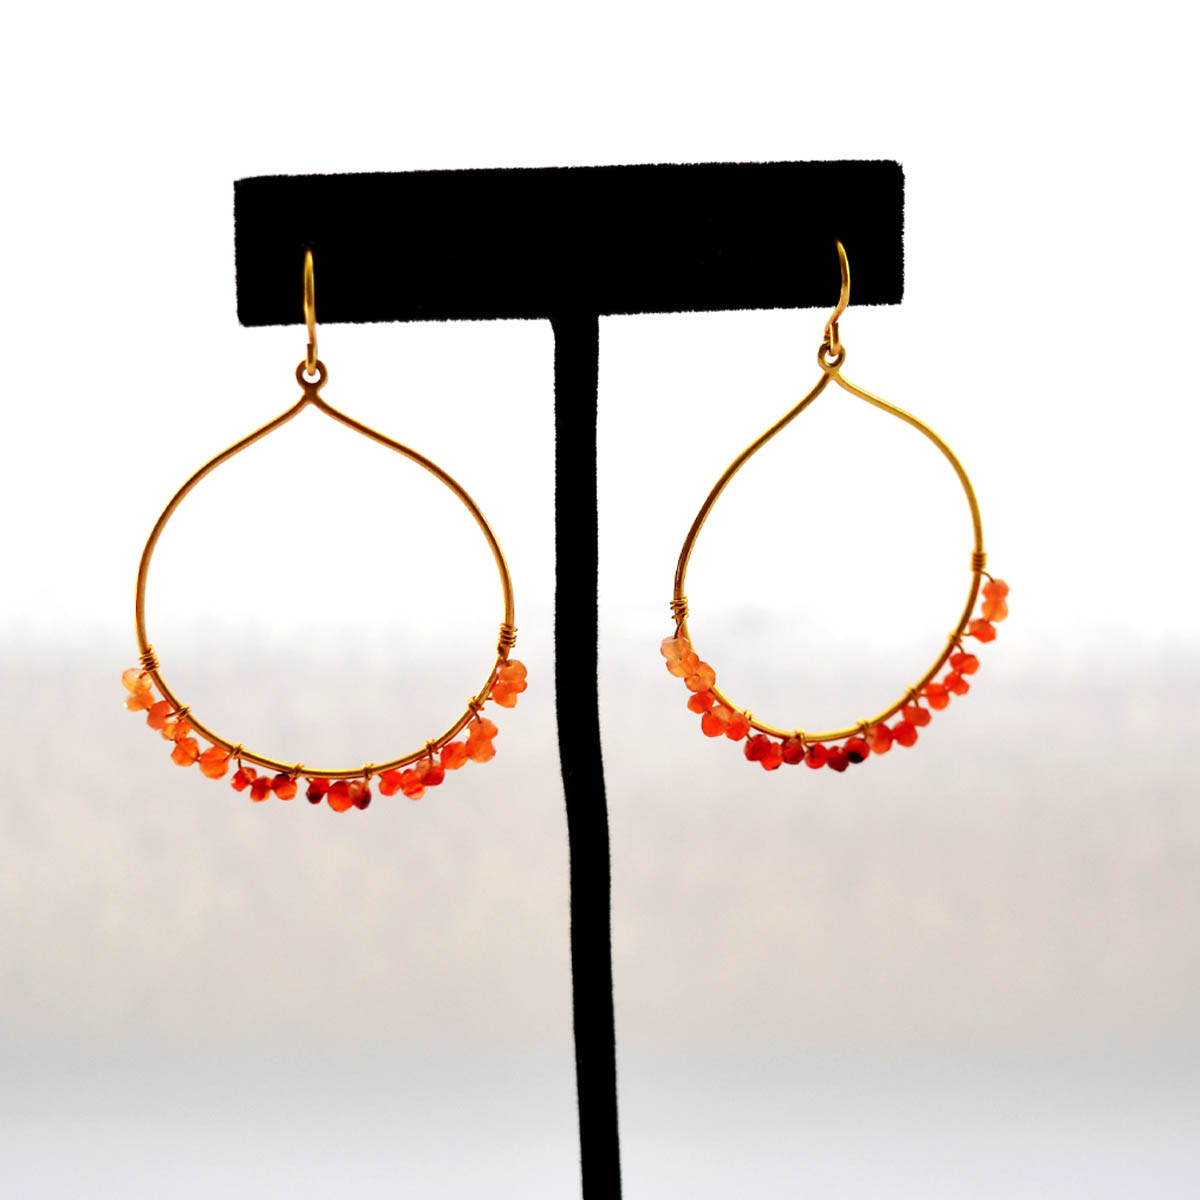 Carnelian Earrings - Monica Davis generously crafted and contributed this beautiful earrings. Featuring vermeil hoops and carnelian stones these would be a stylish way to accessorize any wardrobe!Retail Value: $250.00